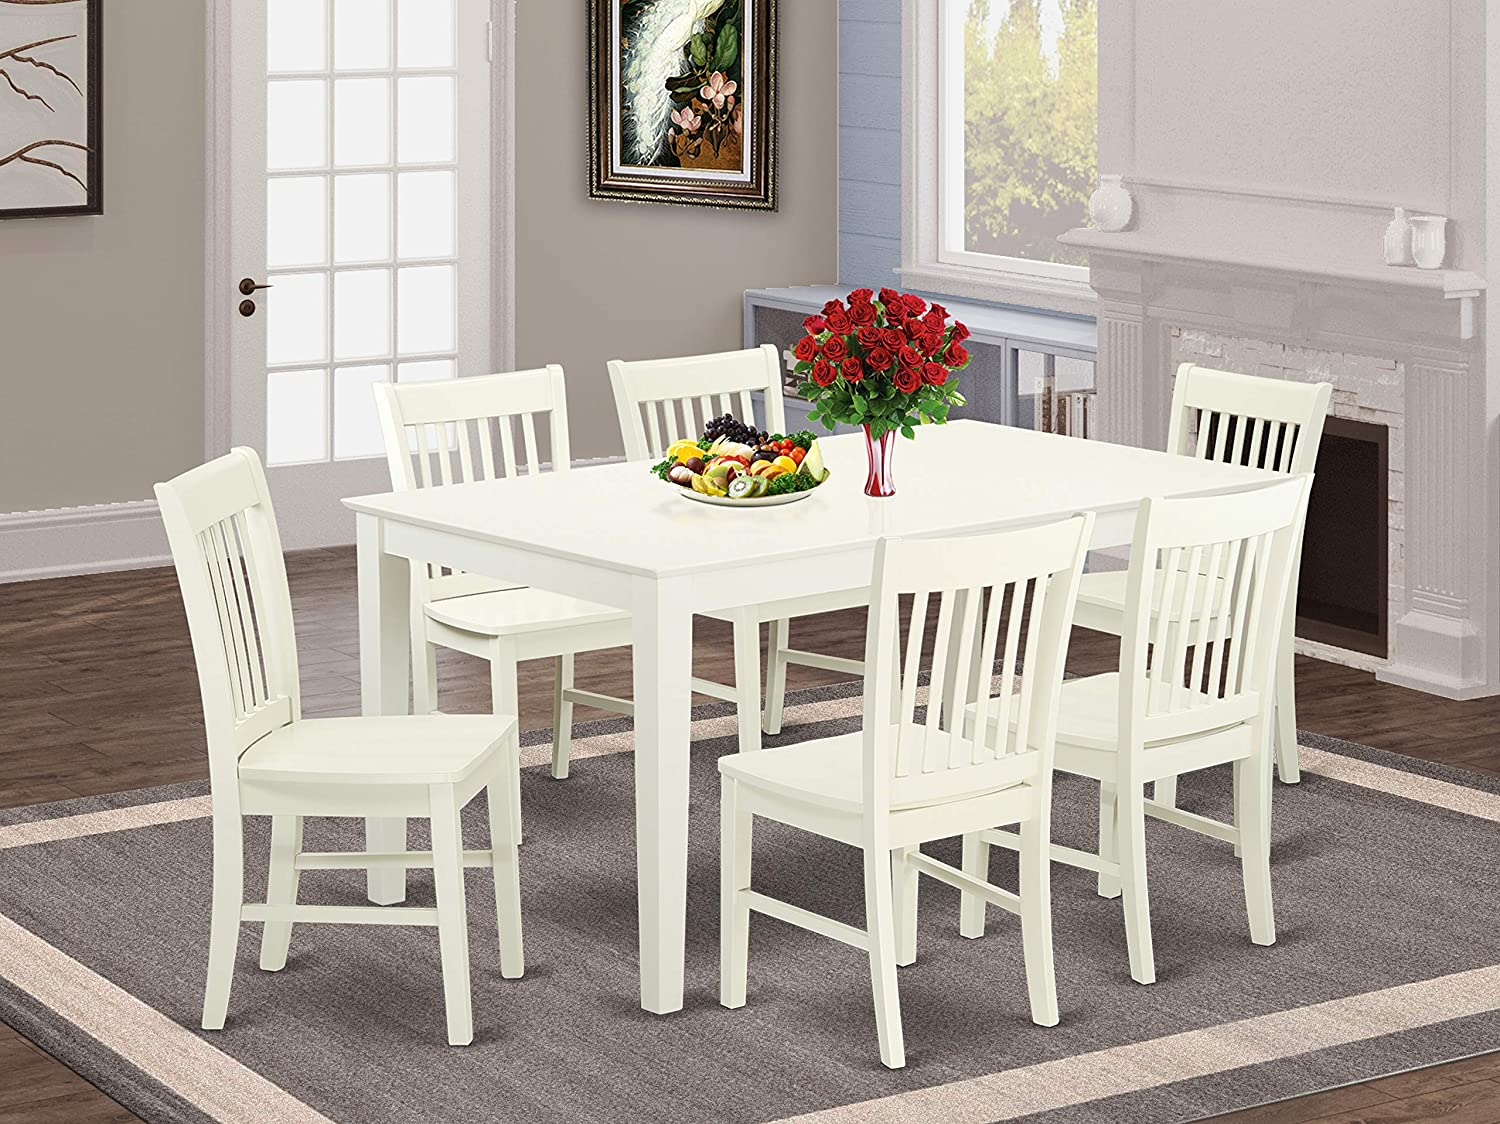 Amazon Com East West Furniture Cano7 Lwh W Rectangular Kitchen Set 7 Pc Wooden Modern Chairs Seat Linen White Finish Dining Room Table And Body 7 Pieces Furniture Decor